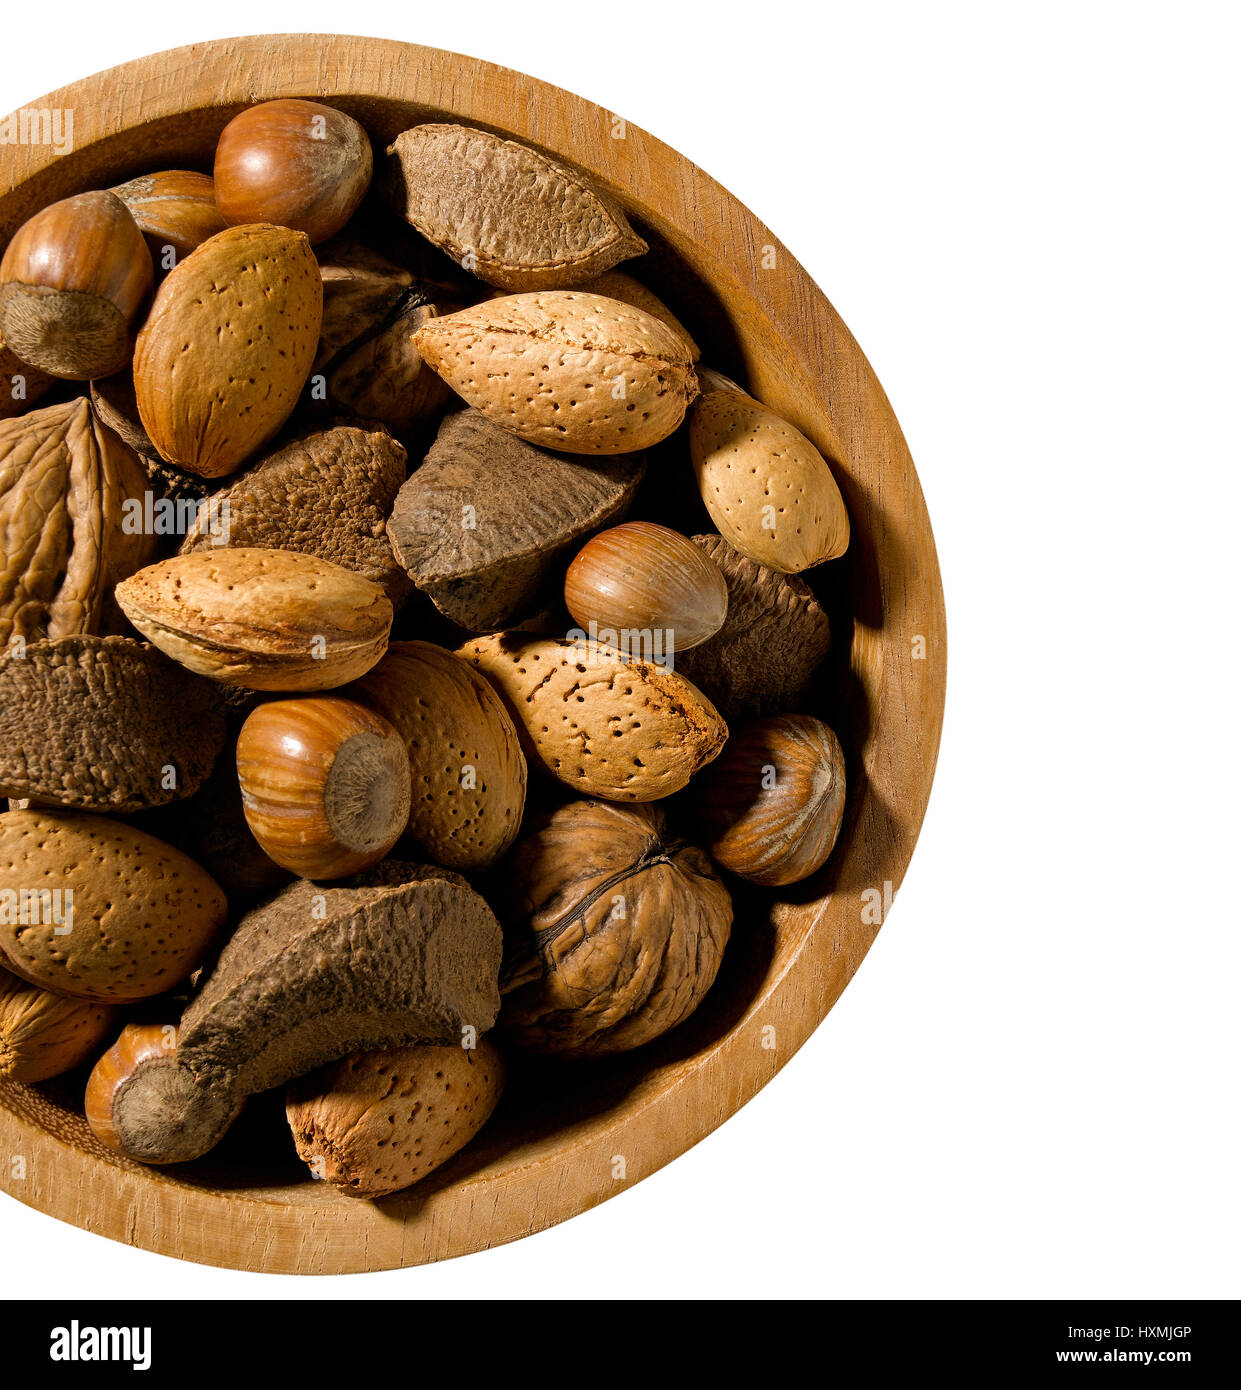 Mixed nuts in bowl on white - Stock Image